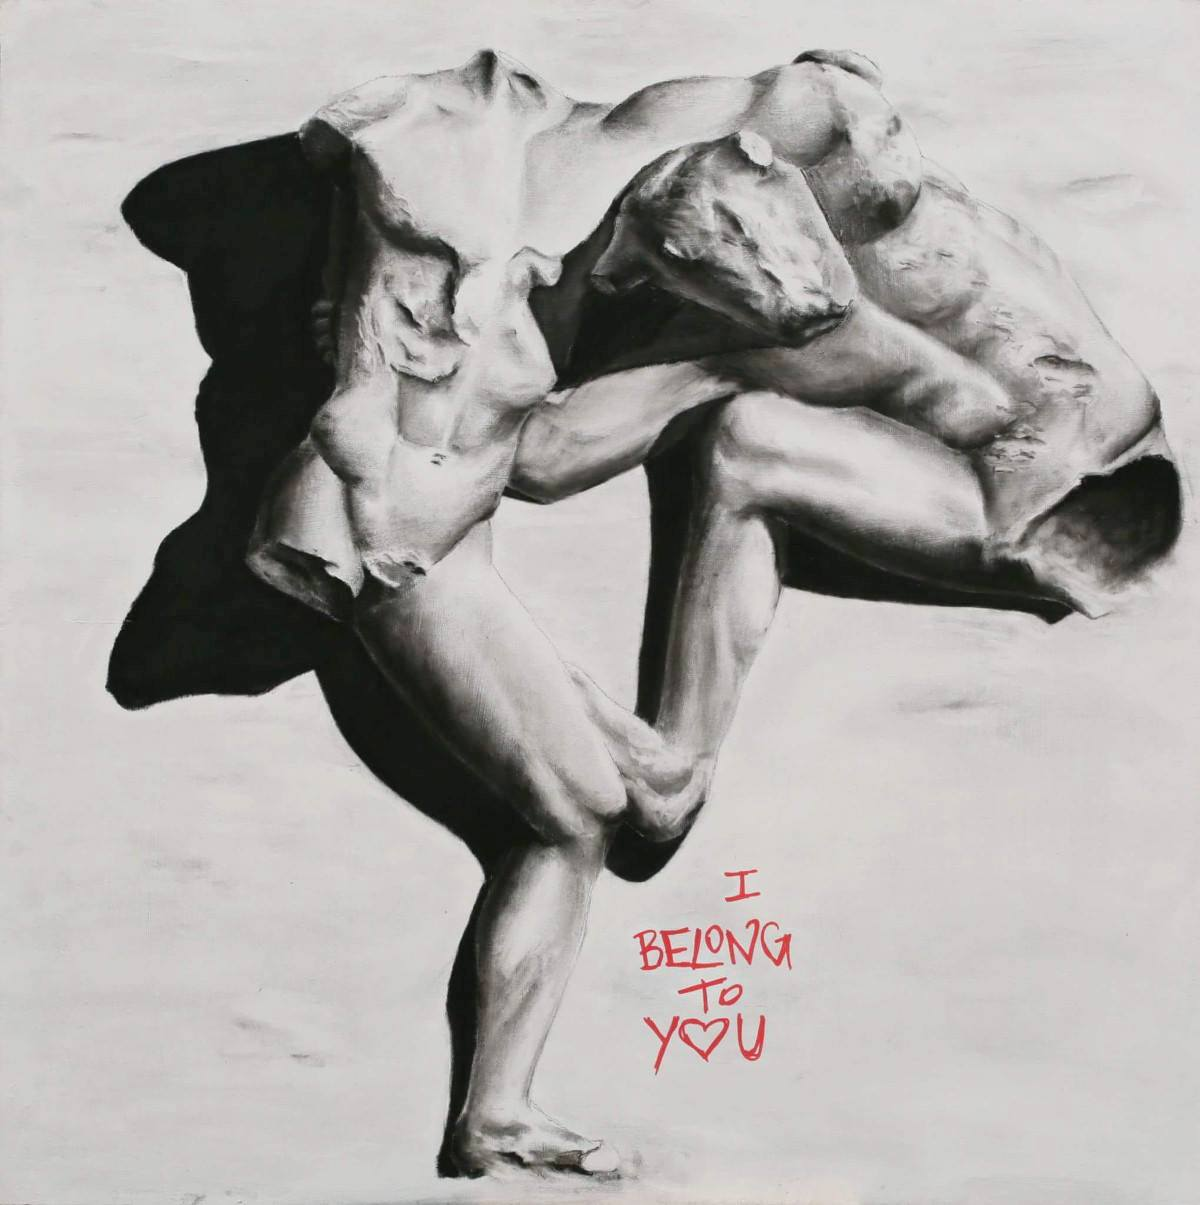 I BELONG TO YOU - 90x90 - carboncino e acrilico su tavola - 2017